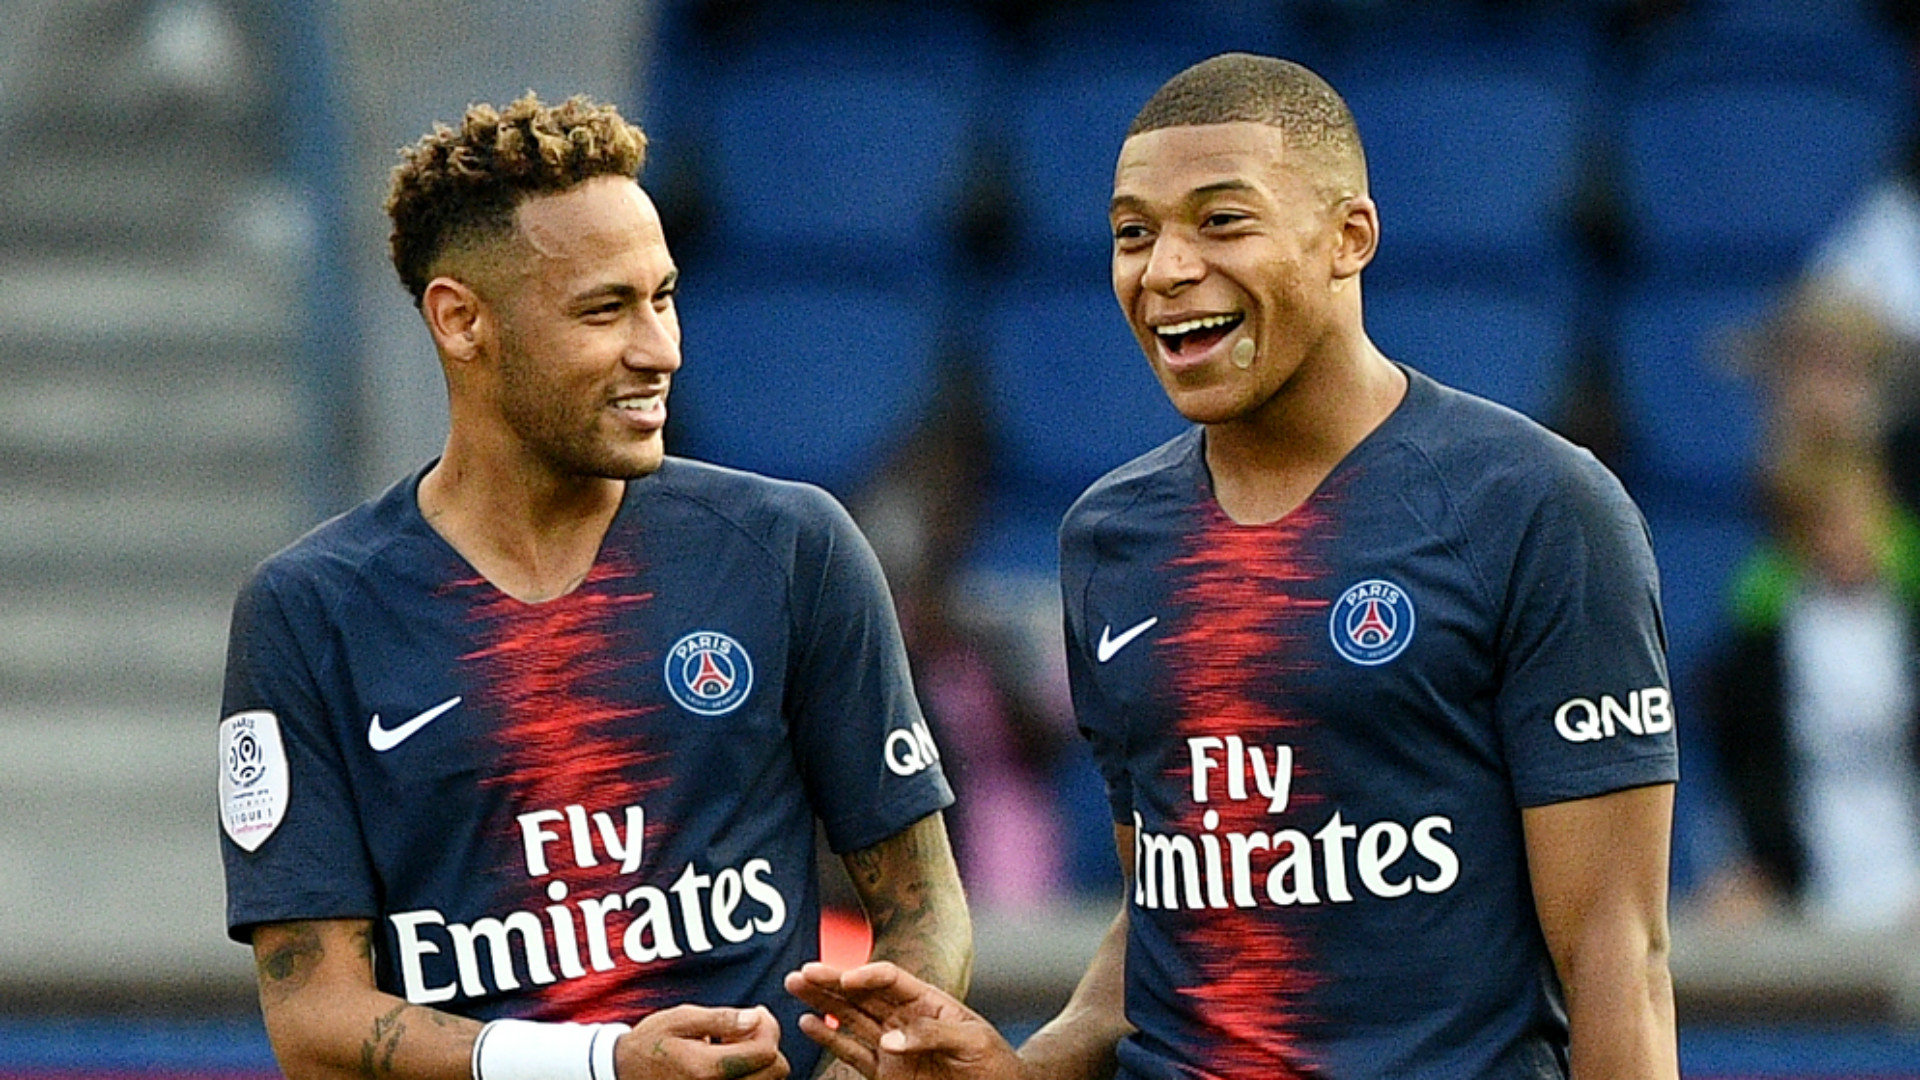 Paris St-Germain (PSG) forward Kylian Mbappe's ankle sprain injury will be reassessed in three days' time, the Ligue 1 champions said on Saturday. Mbappe suffered an ankle sprain in Friday's French Cup final win over St Etienne. A rough tackle from Loic Perrin saw the St Etienne defender catch Mbappe on the ankle and the […]